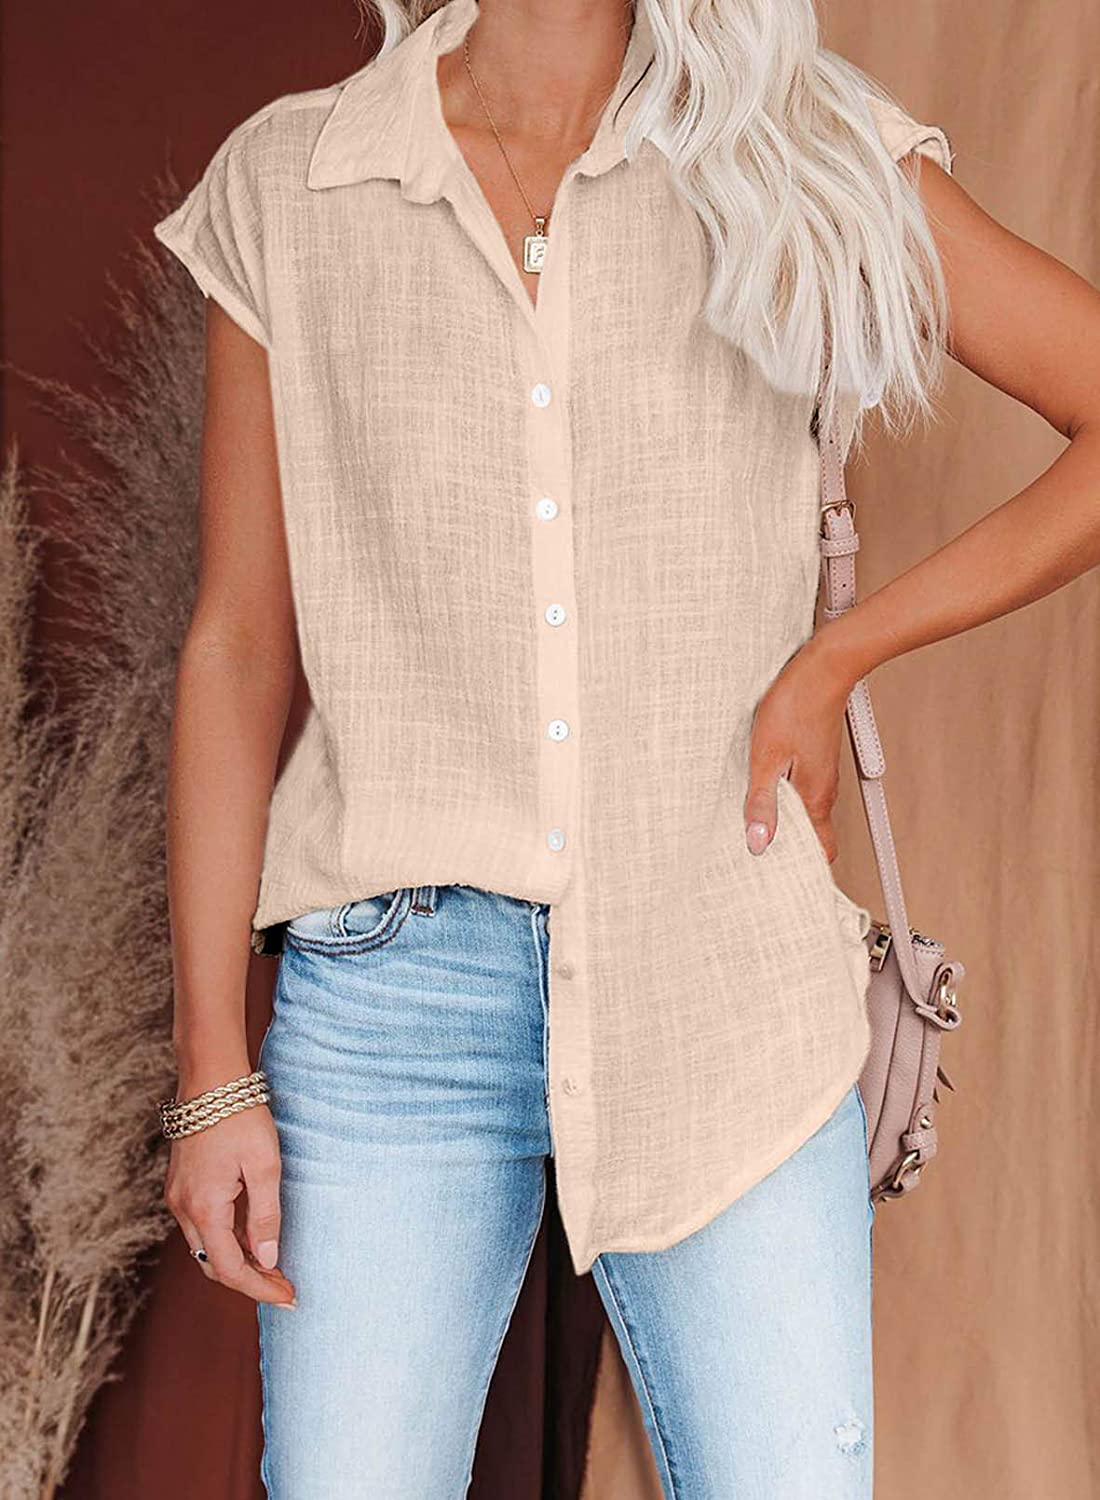 Dokotoo Blouses for Women Short Sleeve Shirts Business Short Sleeve Casual Chiffon Tops